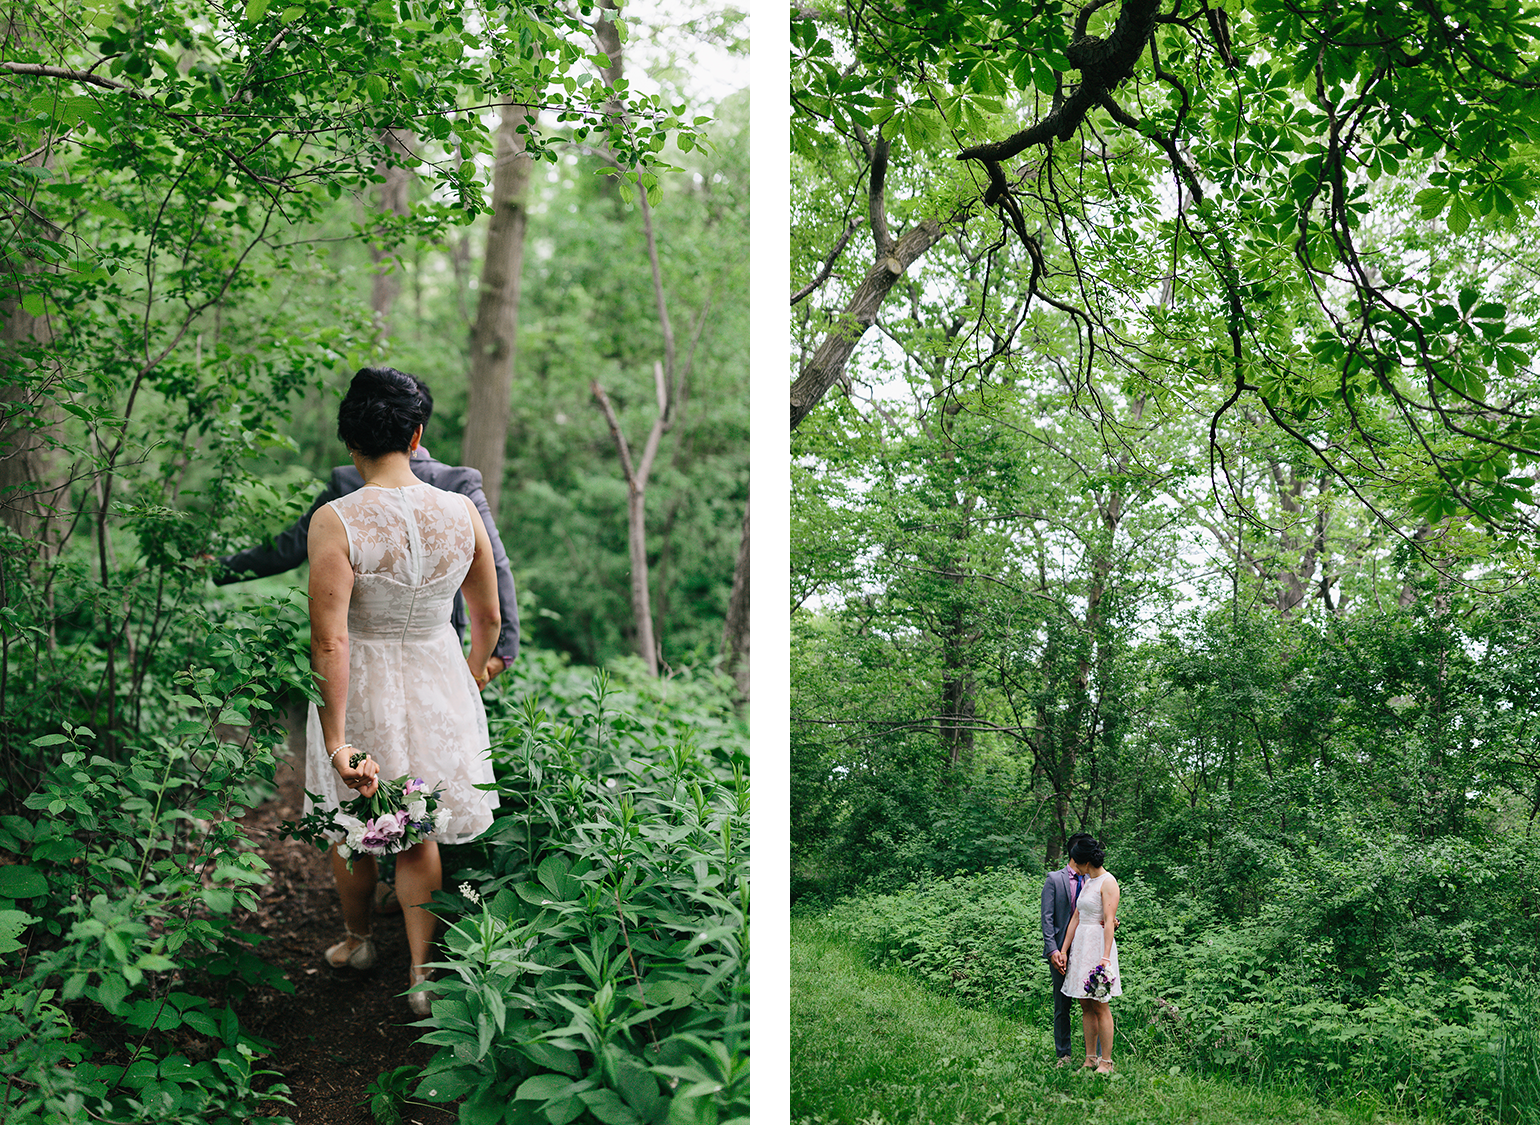 spread-2-high-park-colborne-lodge-intimate-small-elopement-junebug-weddings-outdoor-wedding-bride-and-groom-portraits-cabin-cottage-like-vibes-greenery-forest-trees-couples-photos-romantic-walking-short-wedding-dress.jpg